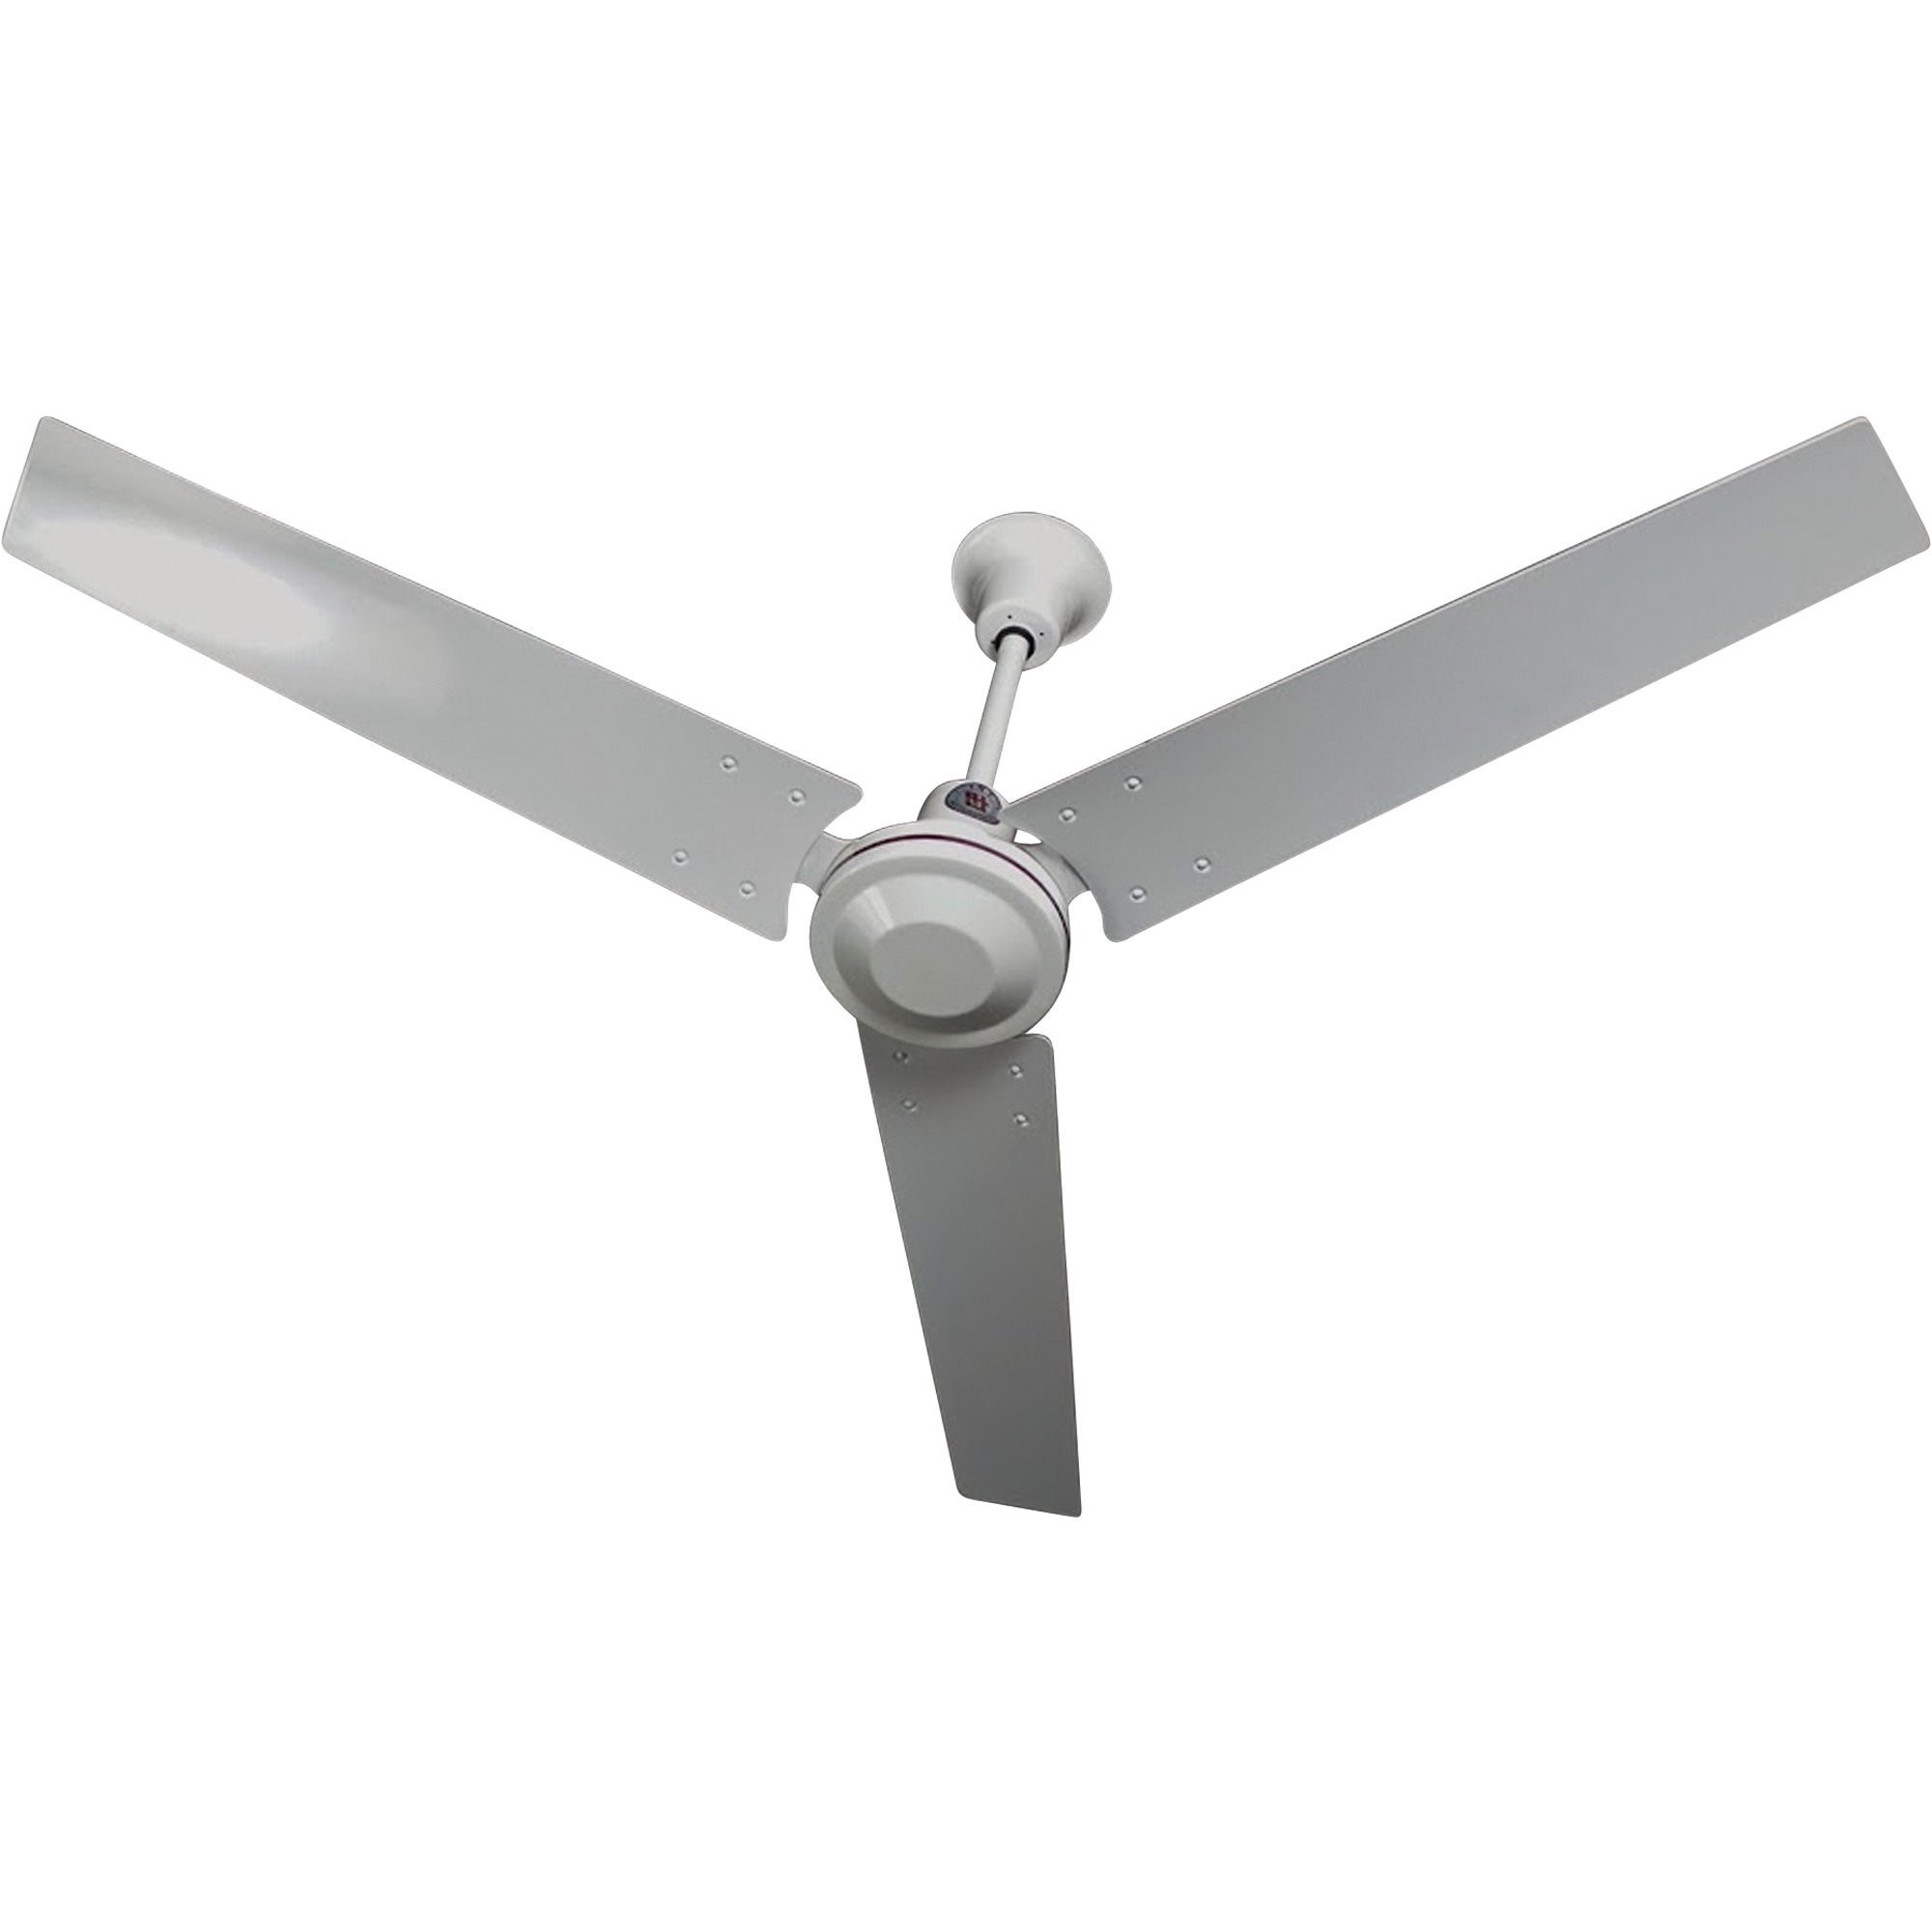 Northern Tool + Equipment Throughout Heavy Duty Outdoor Ceiling Fans (View 17 of 20)